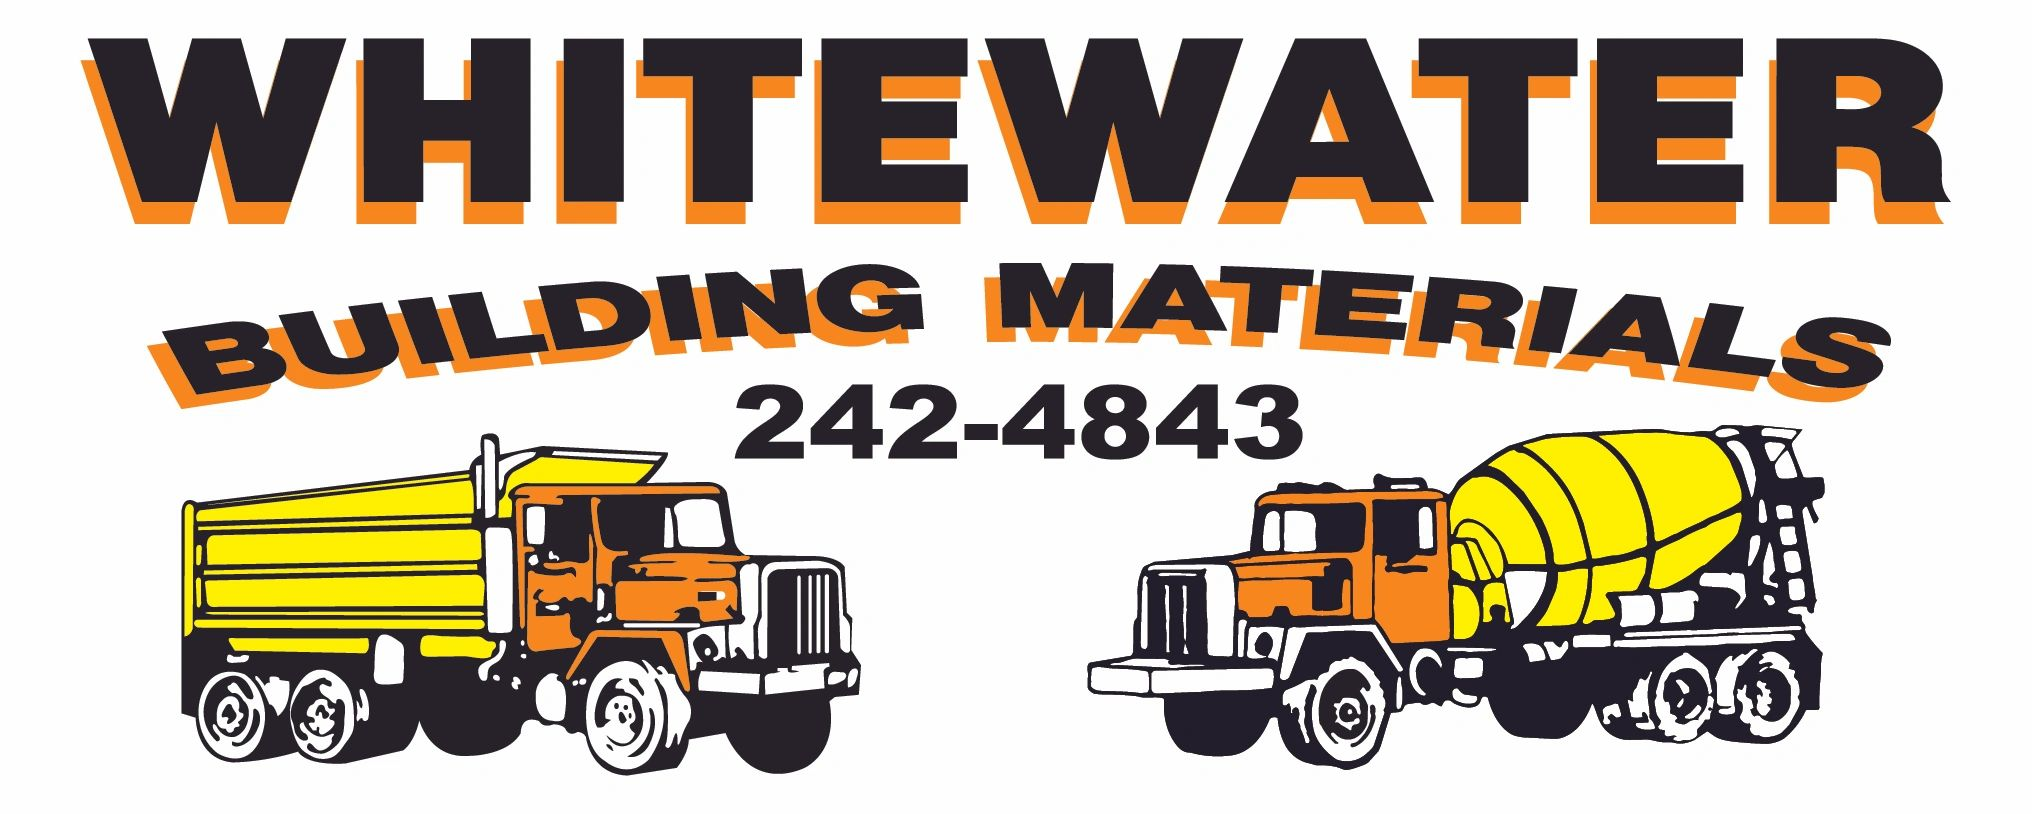 Whitewater Building Materials Corp logo